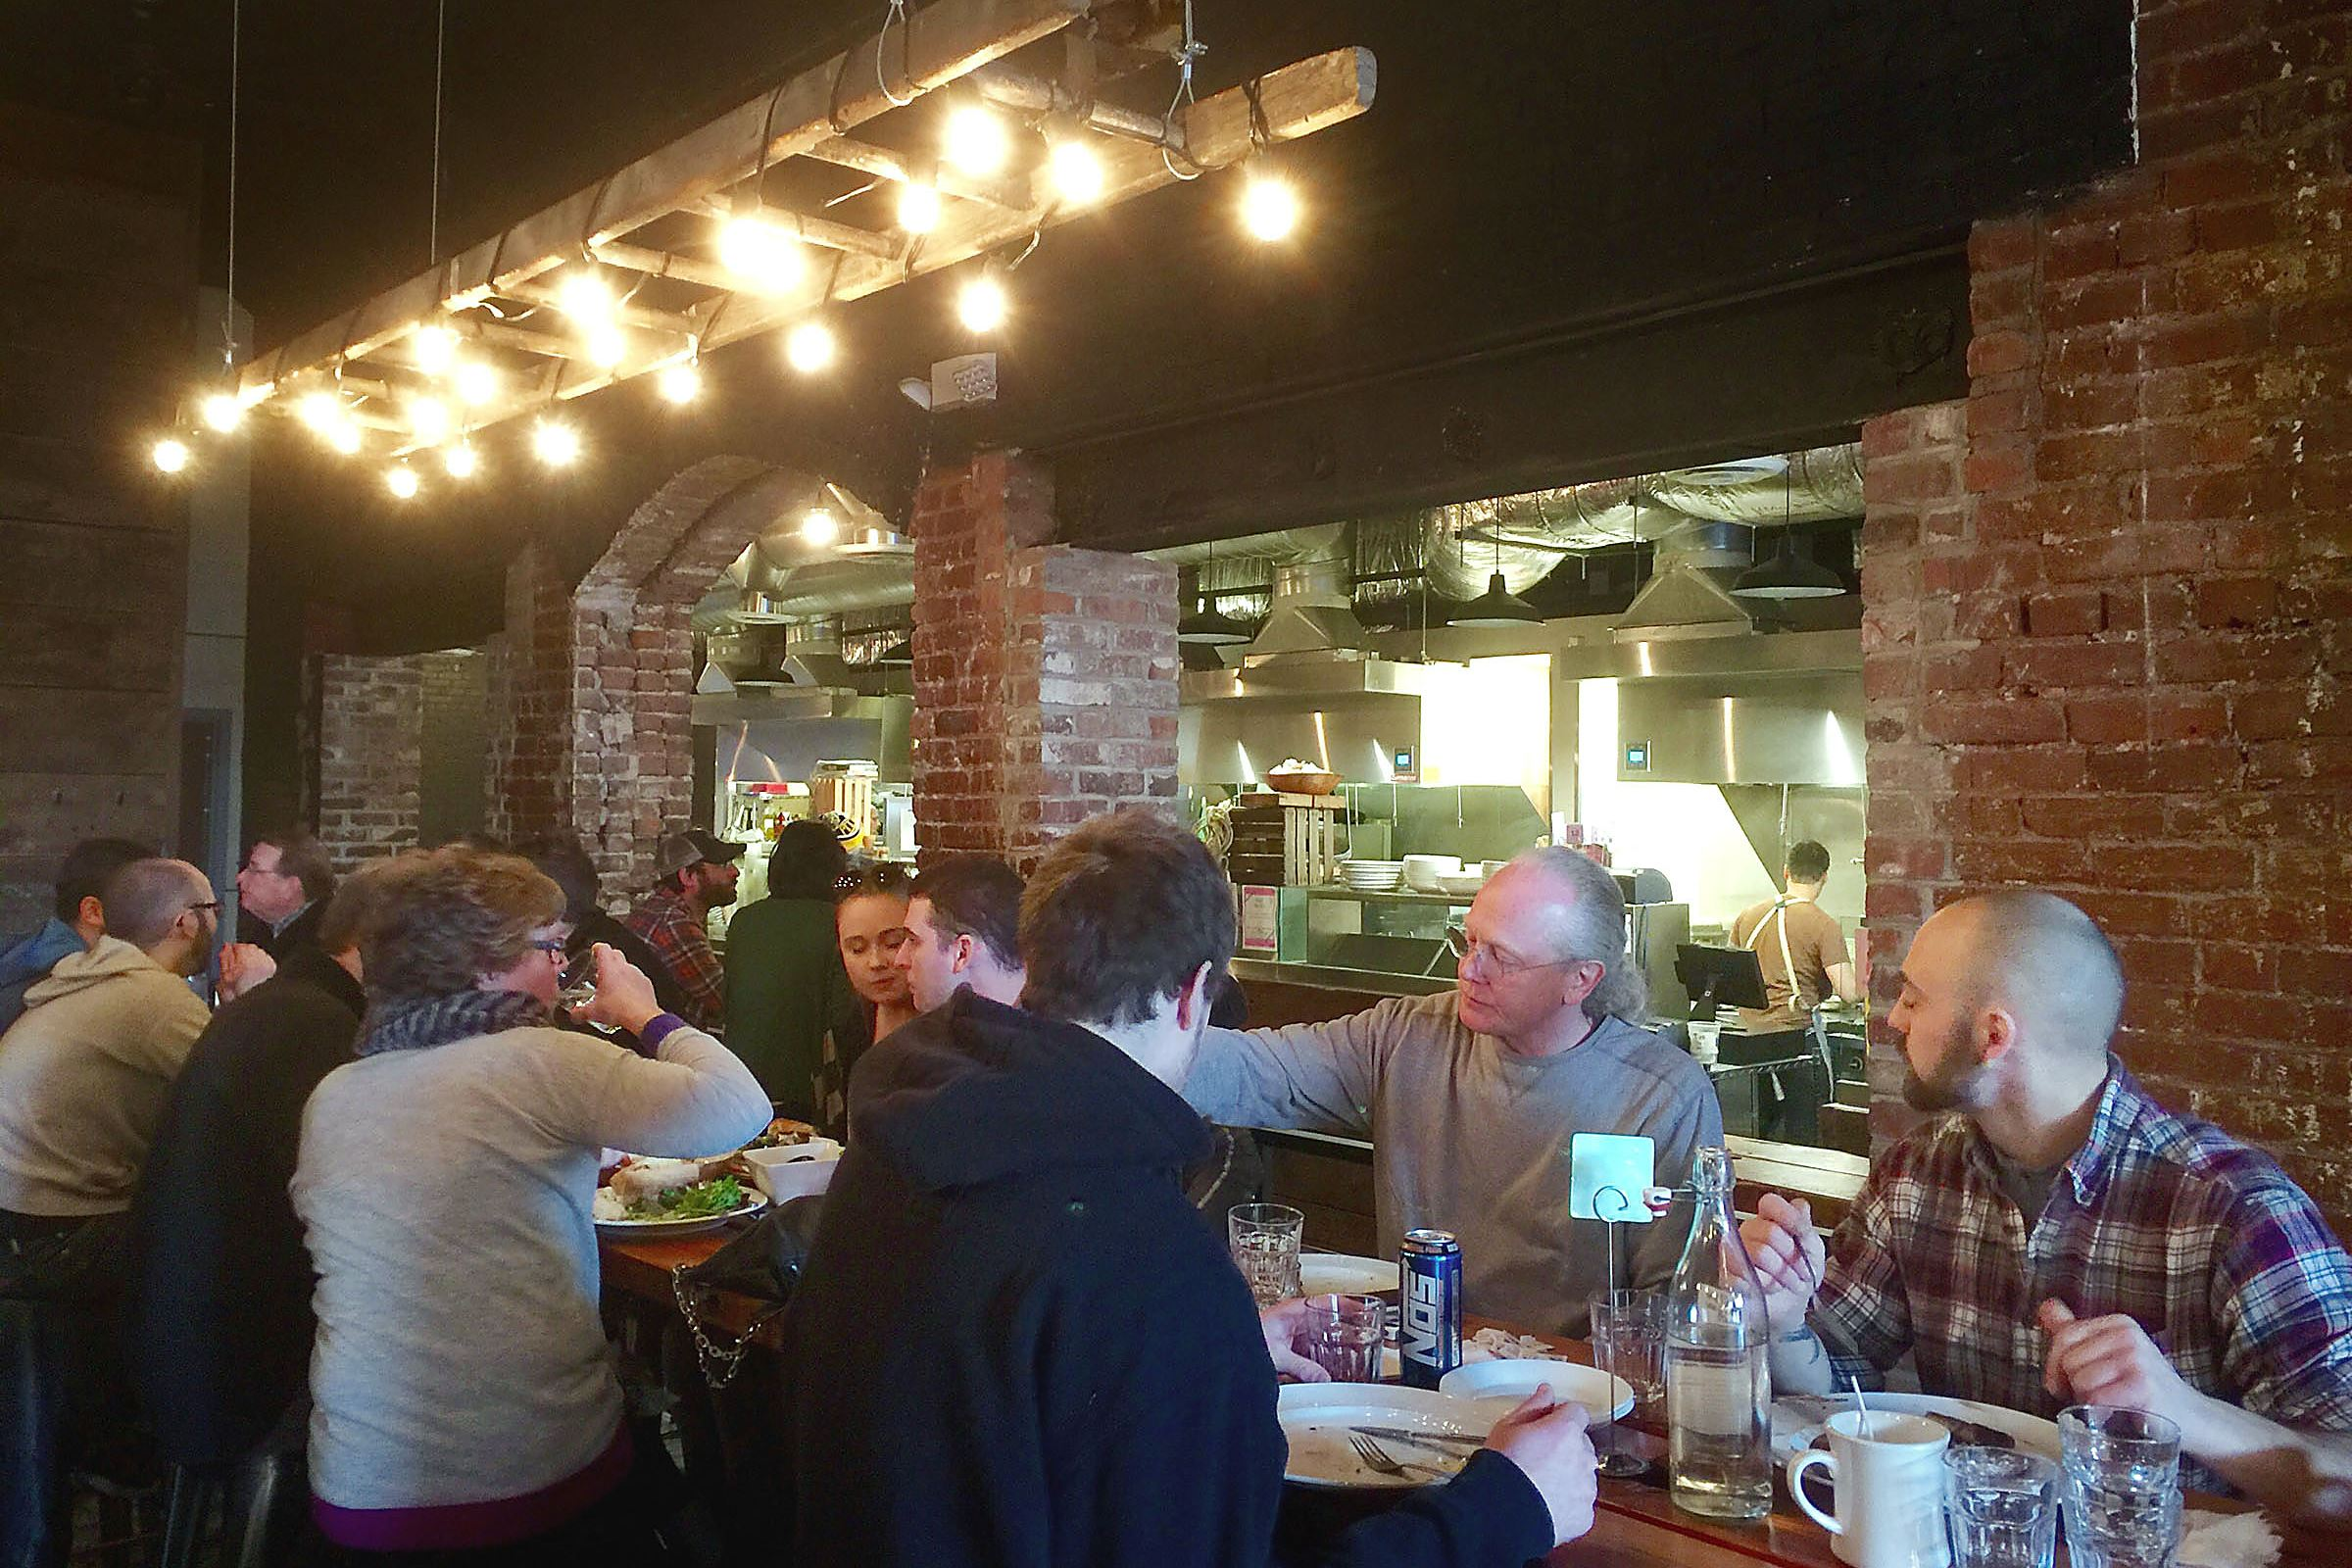 smallman galley to open second location on north side | pittsburgh